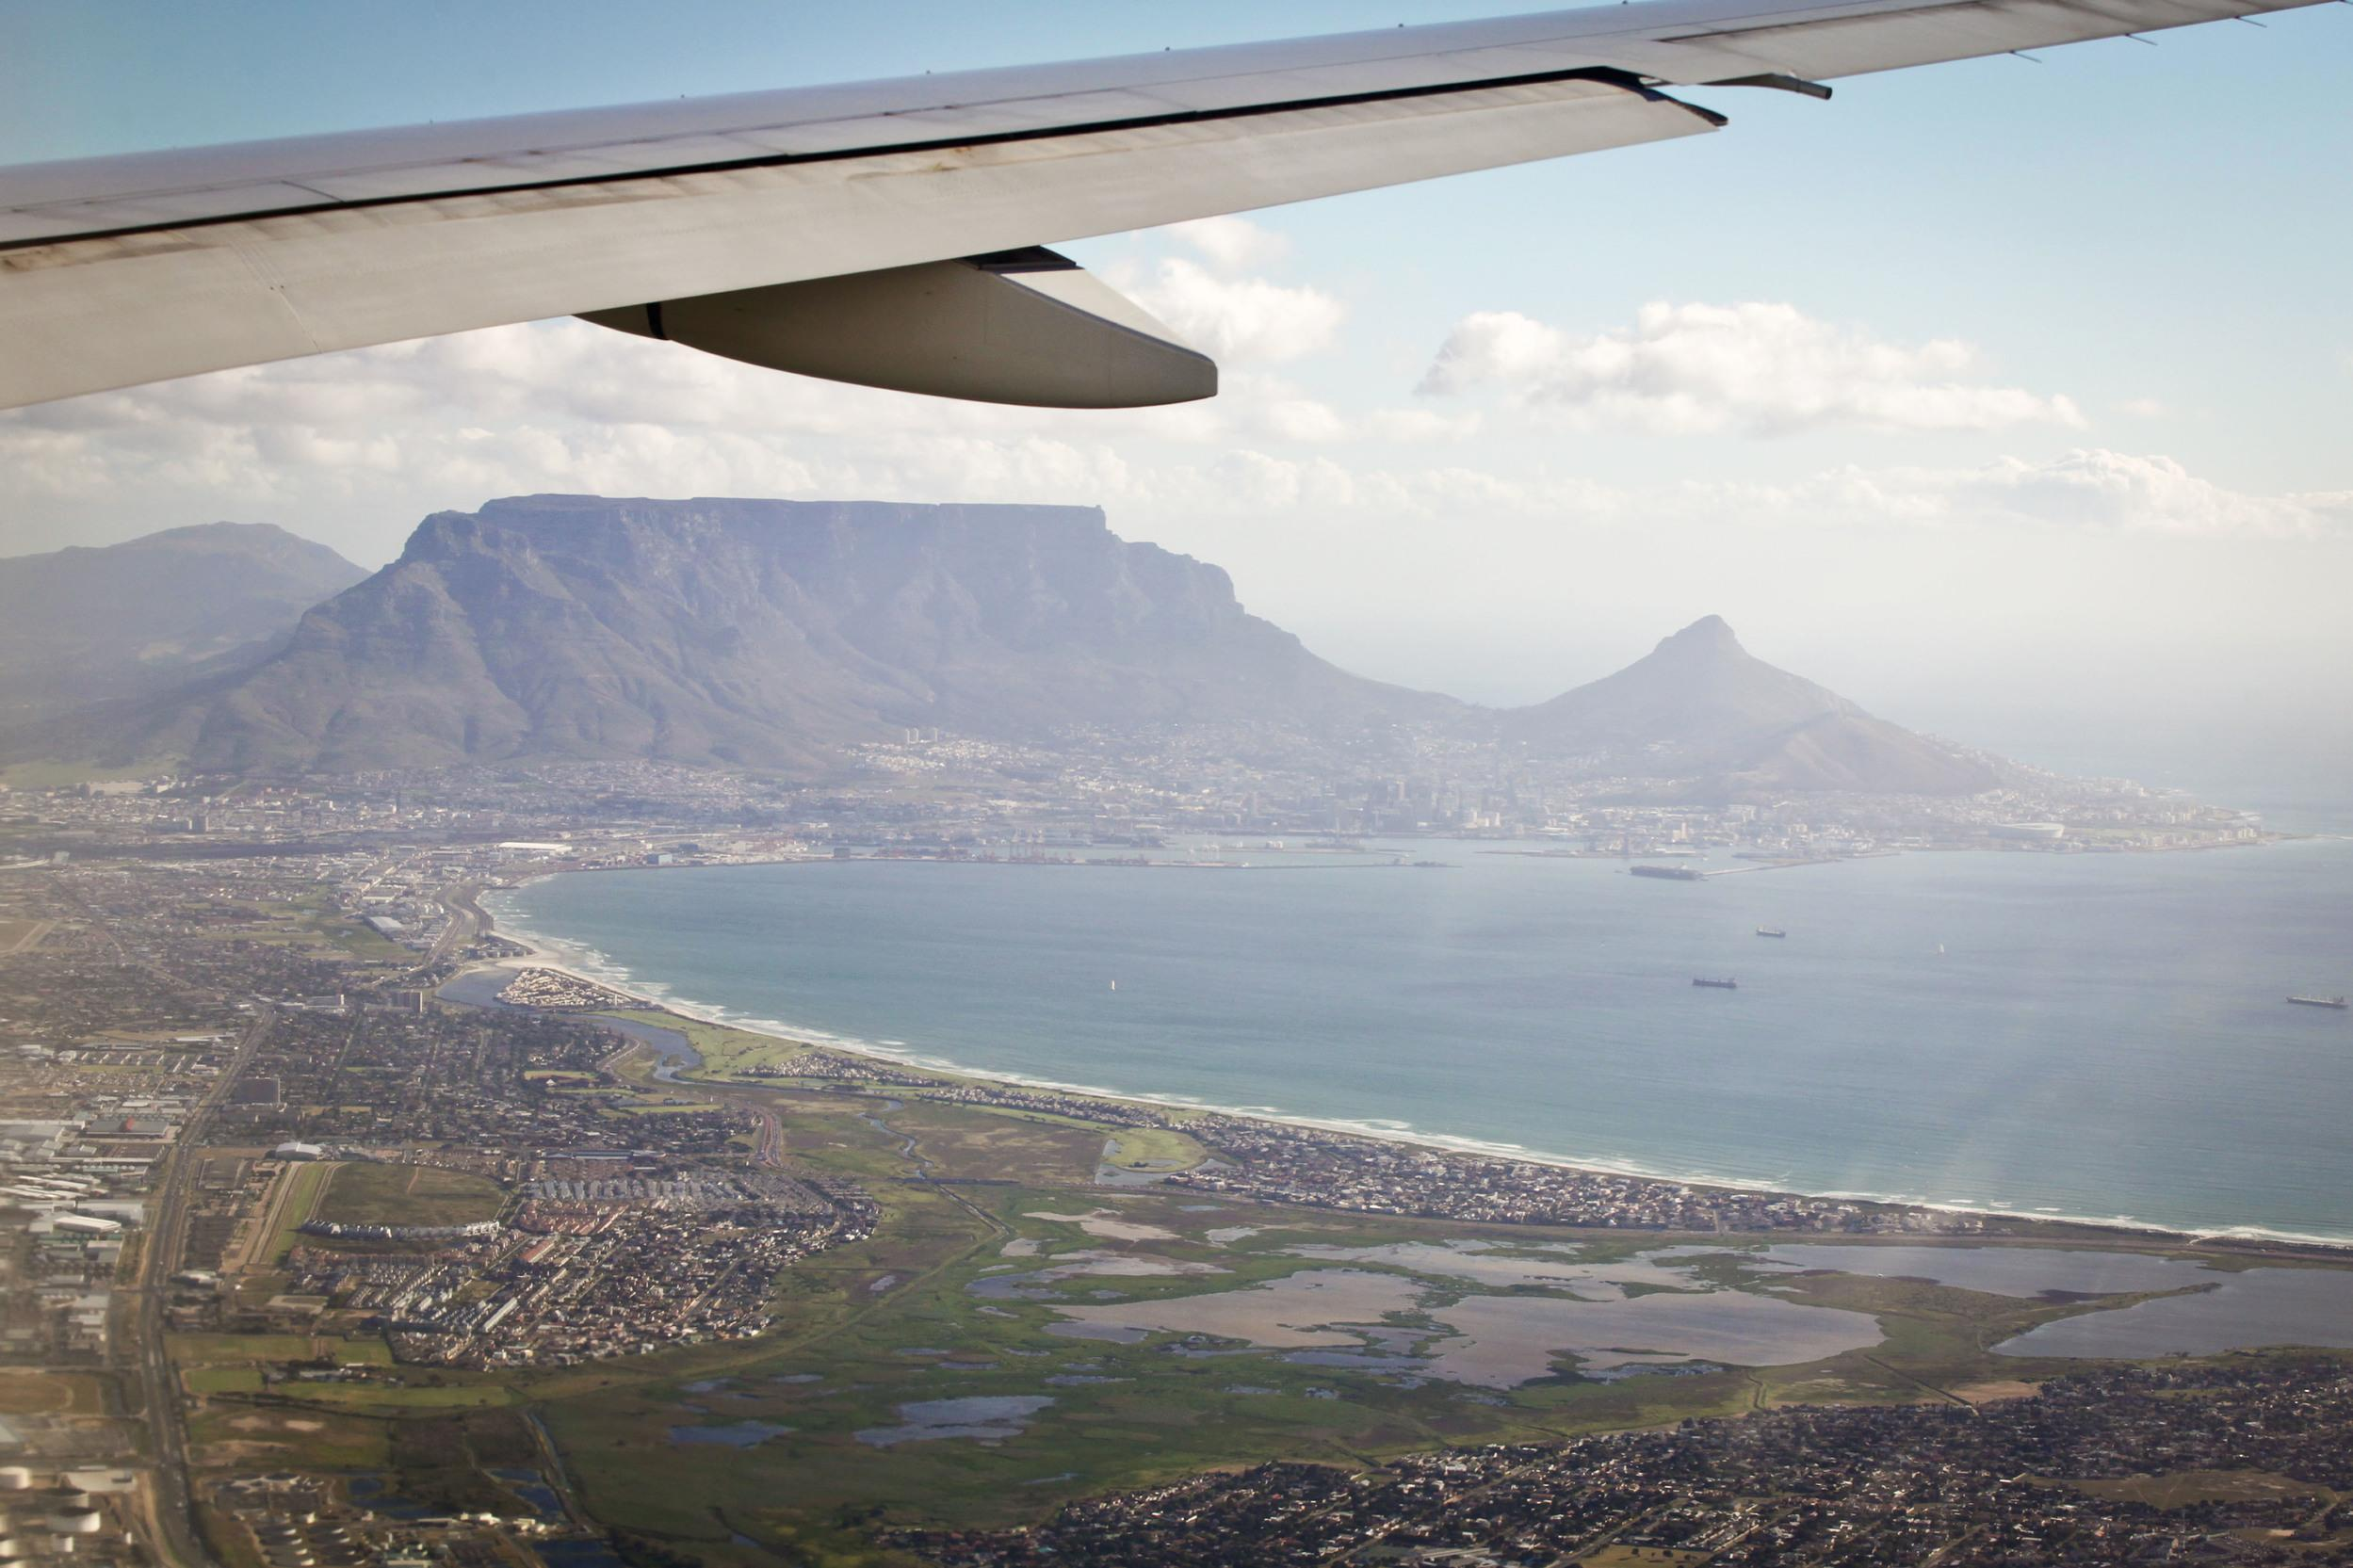 """""""Flying in to see such a great landmark like Table Mountain as well as the beautiful city of Cape Town makes this airport approach truly one-of-a-kind."""""""